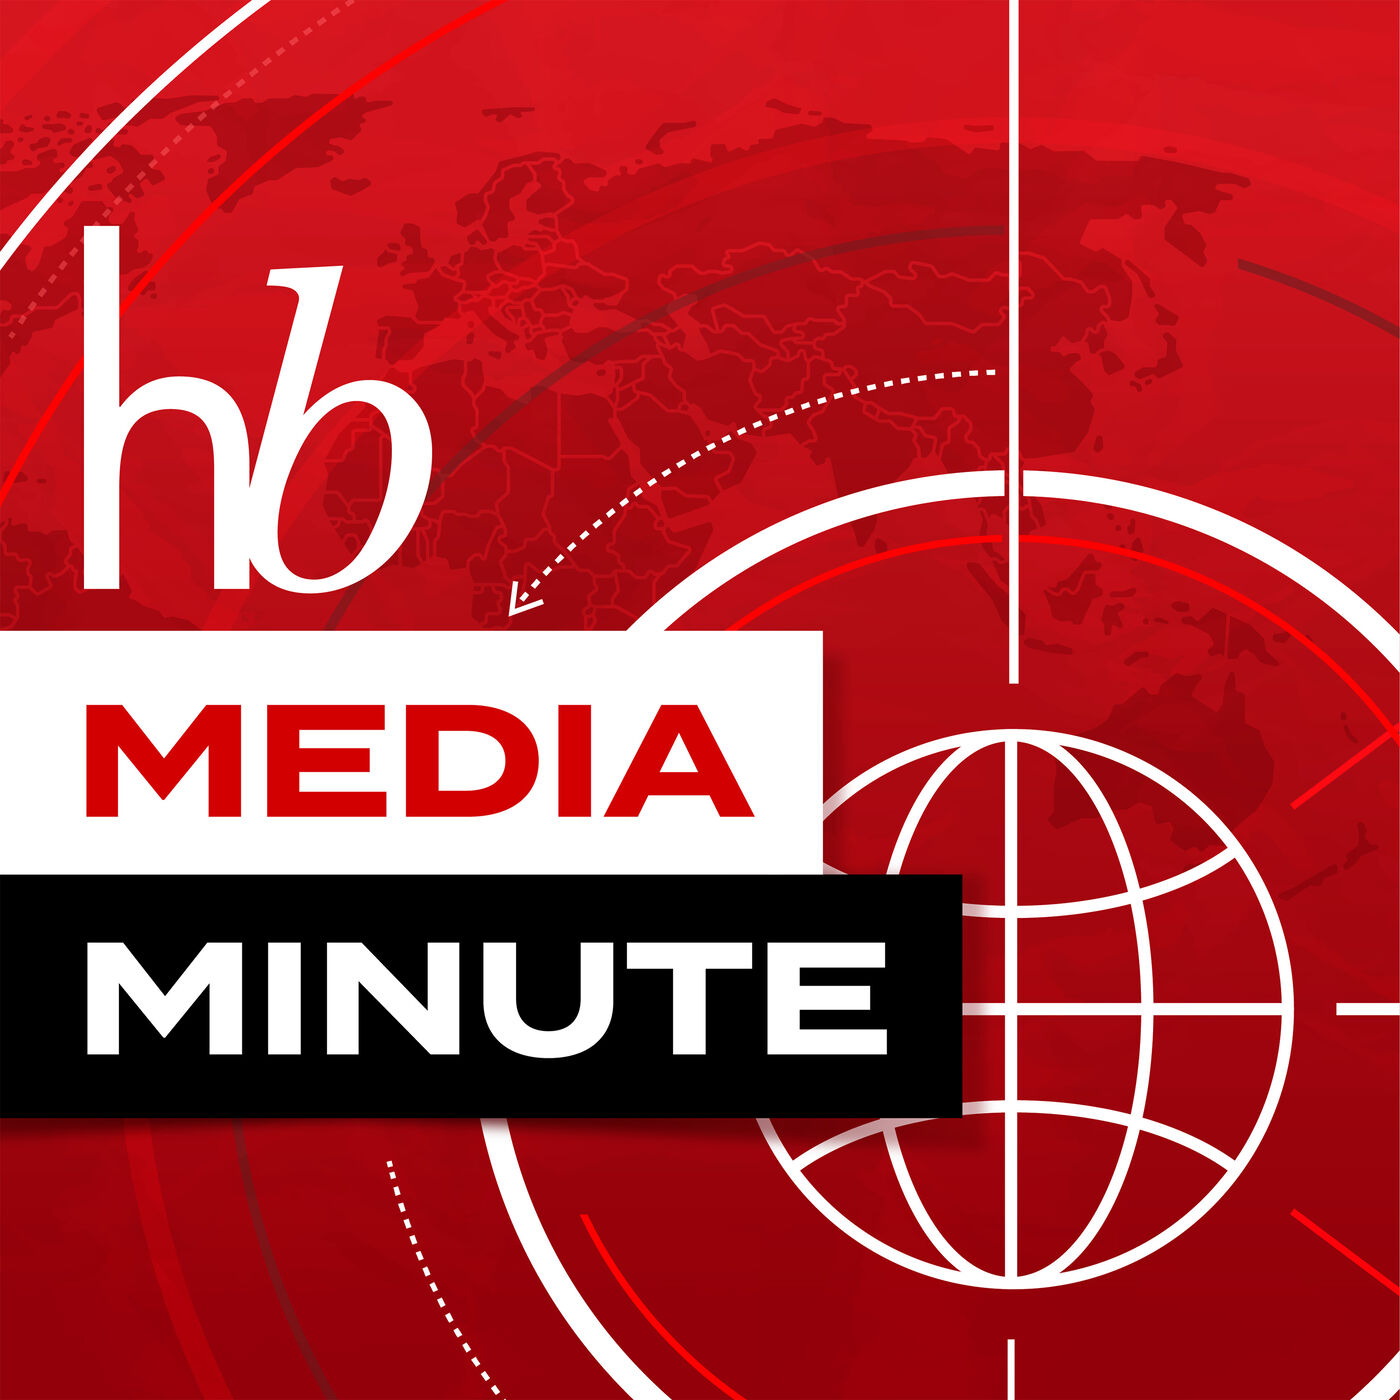 HB Media Minute Episode 3 - Restrictions on Open Government and Public Information During COVID-19